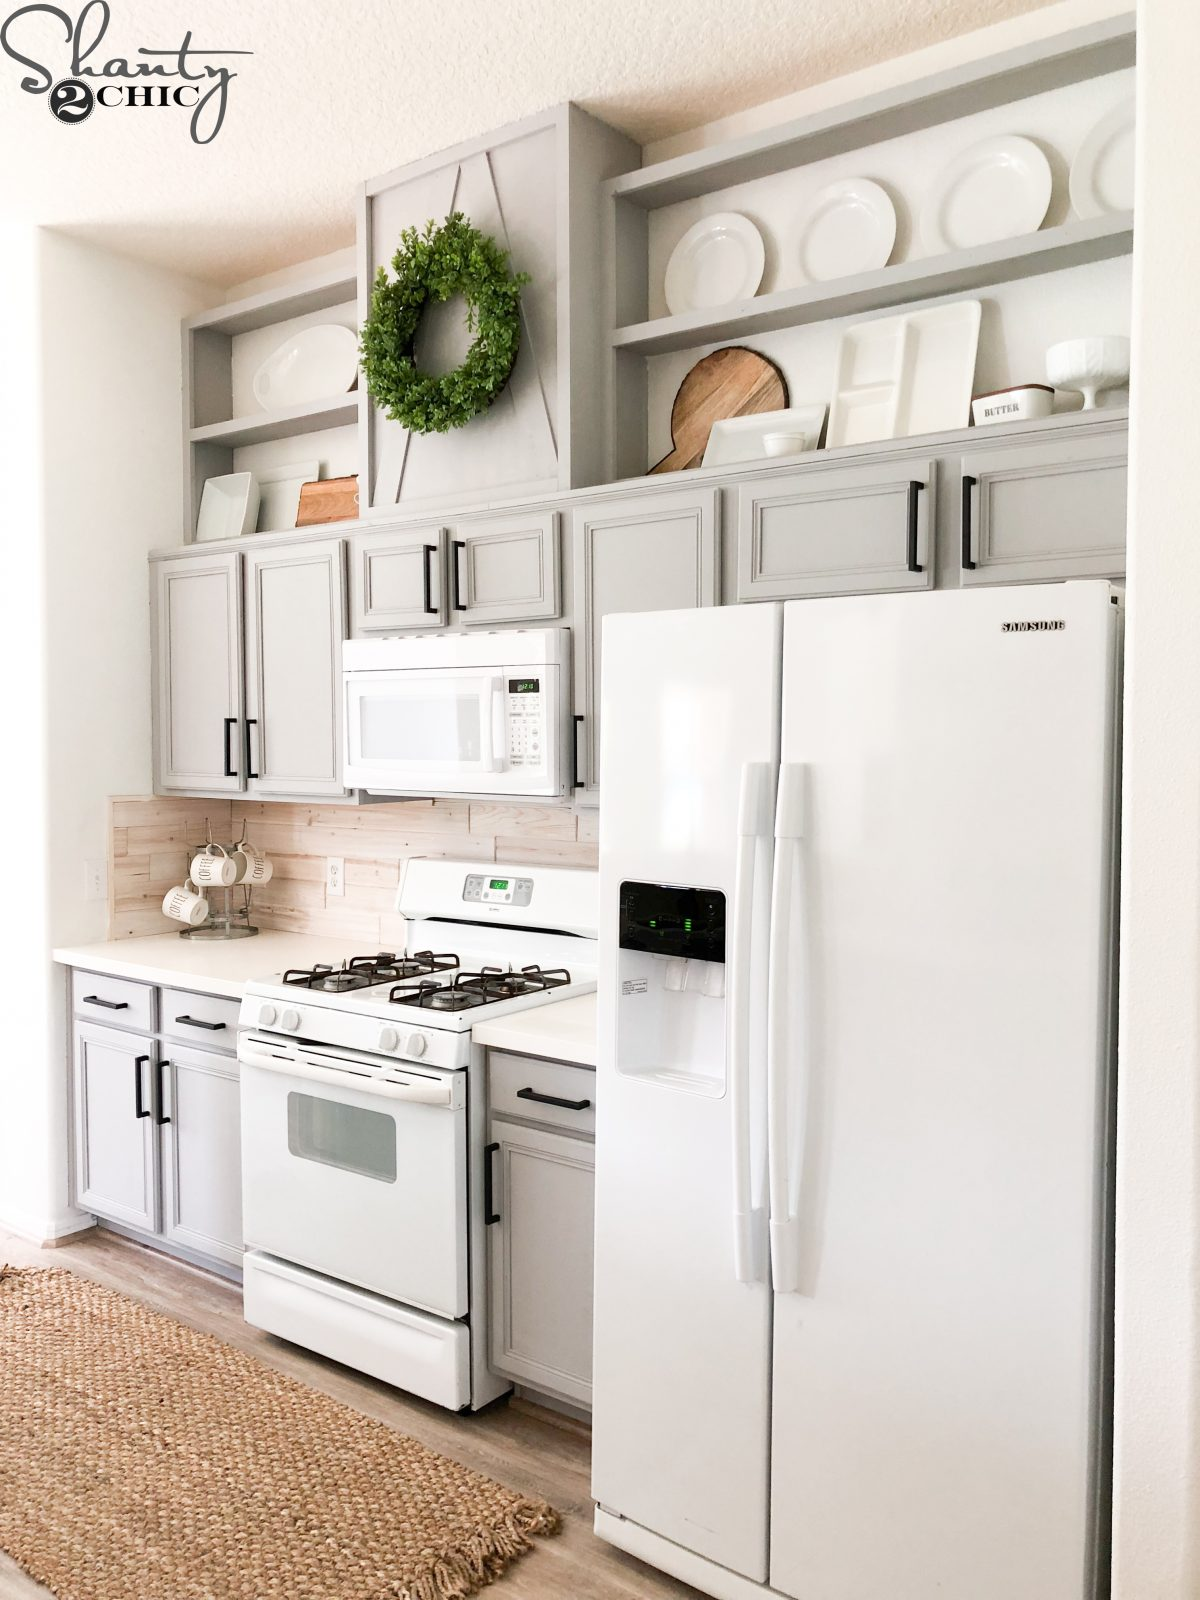 How To Easily Paint Kitchen Cabinet